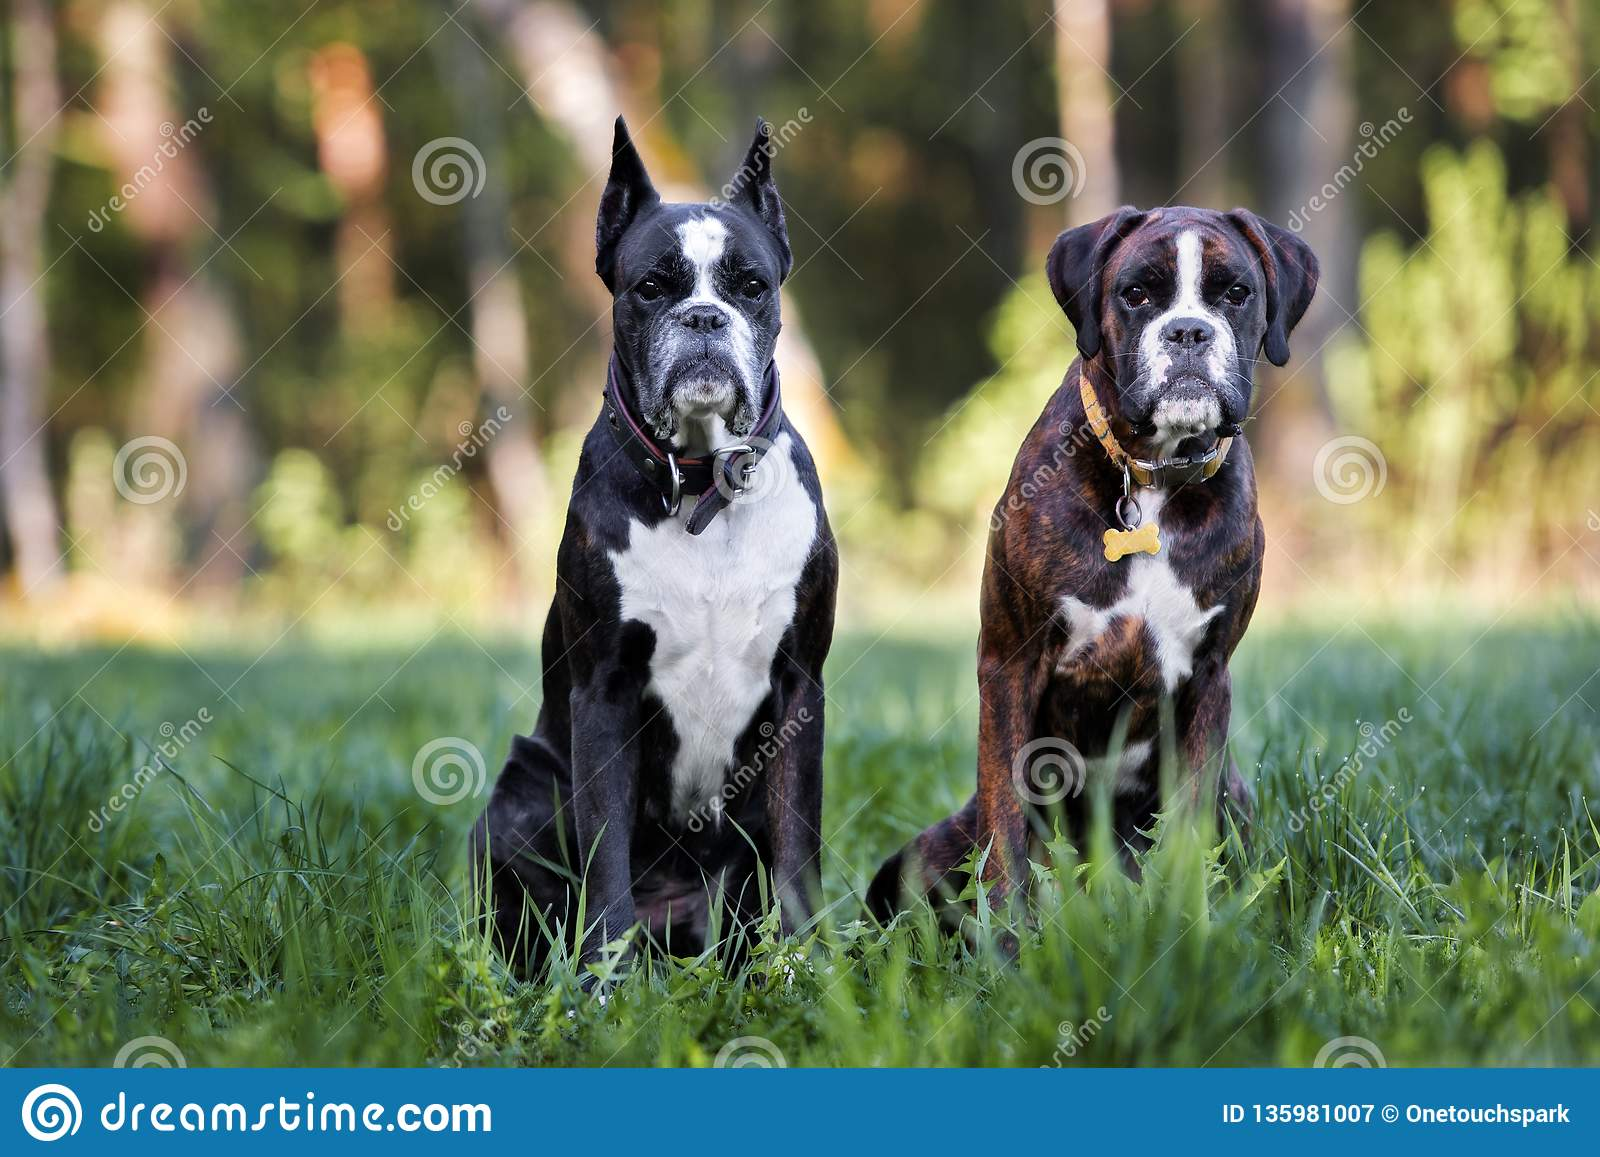 Two German Boxer Dogs Posing Together Outdoors Stock Image Image Of Purebred Nature 135981007